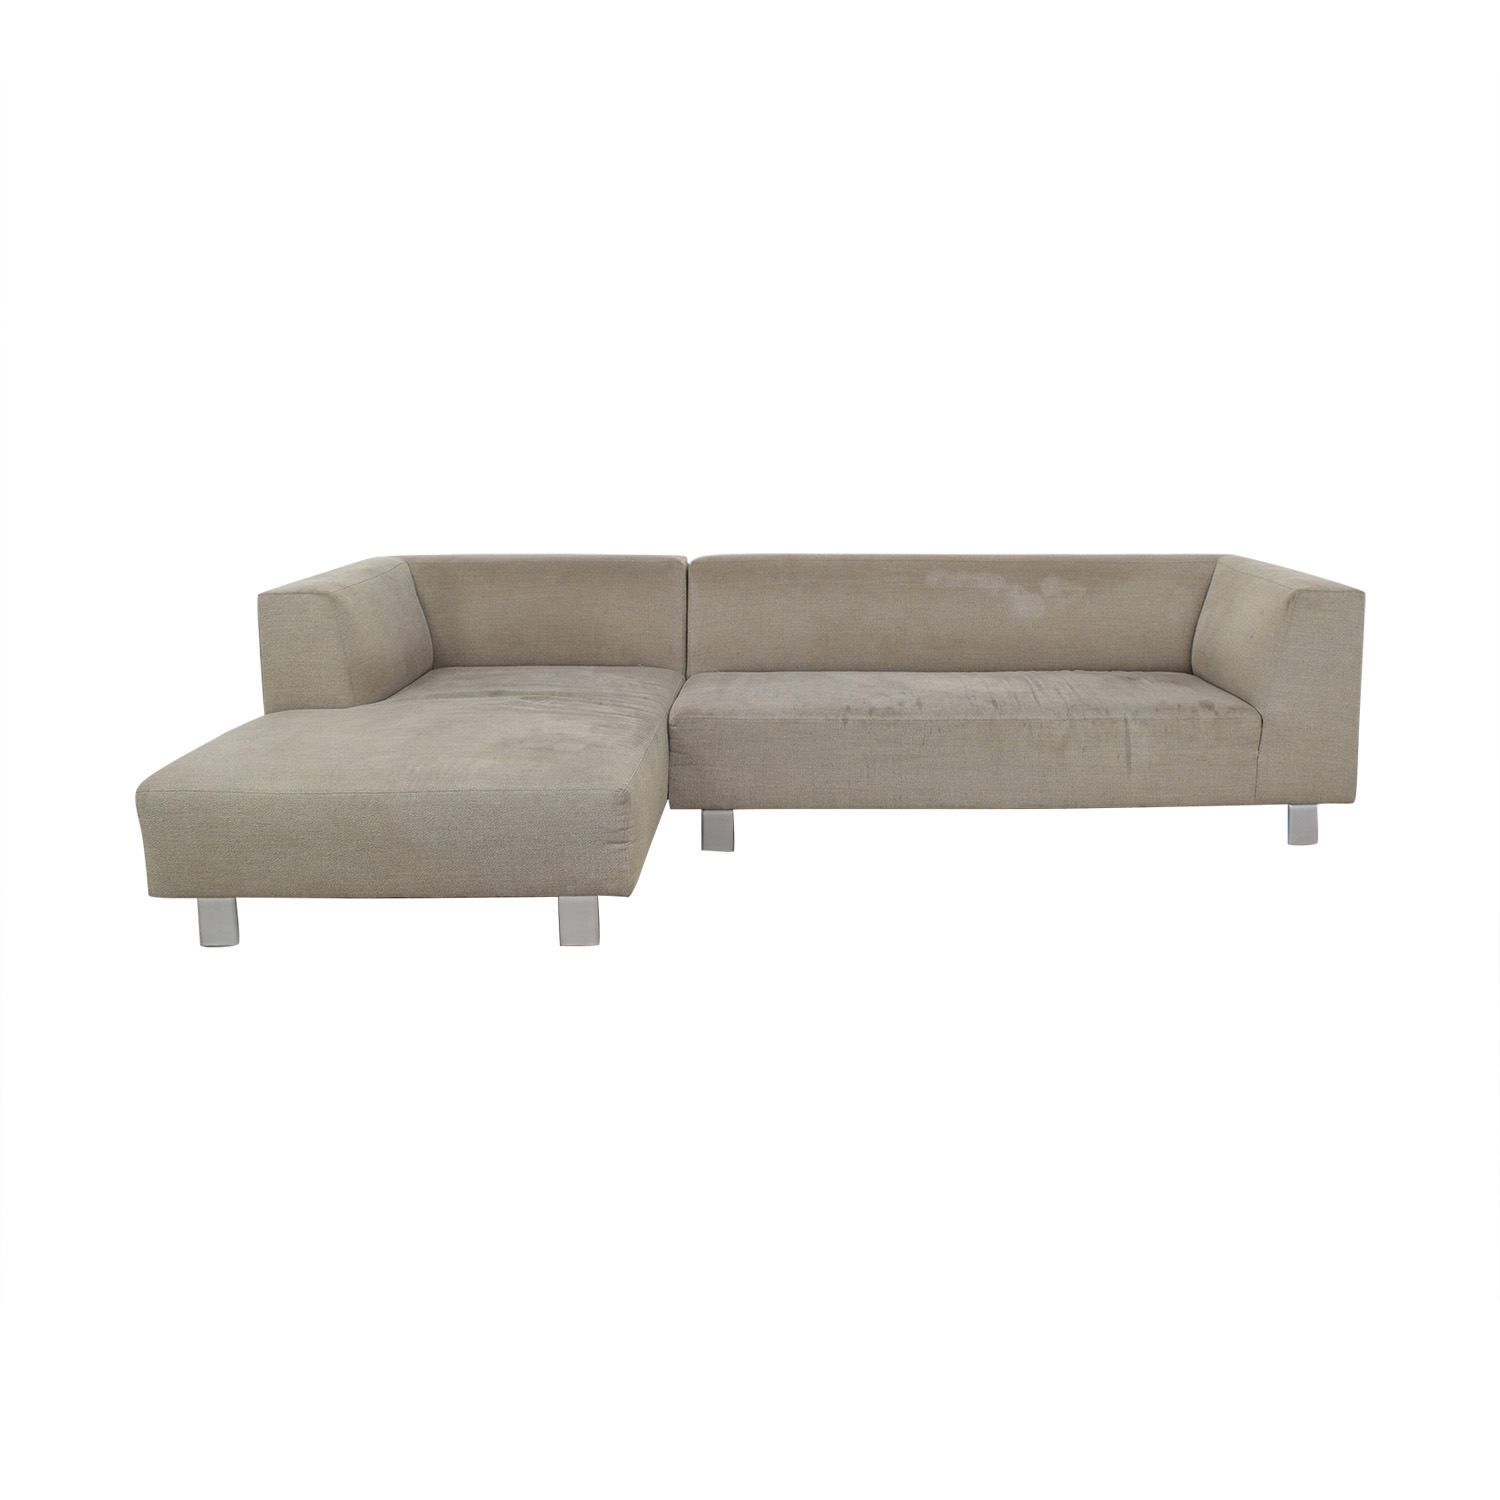 Room & Board Grey L-Shaped Couch / Sofas